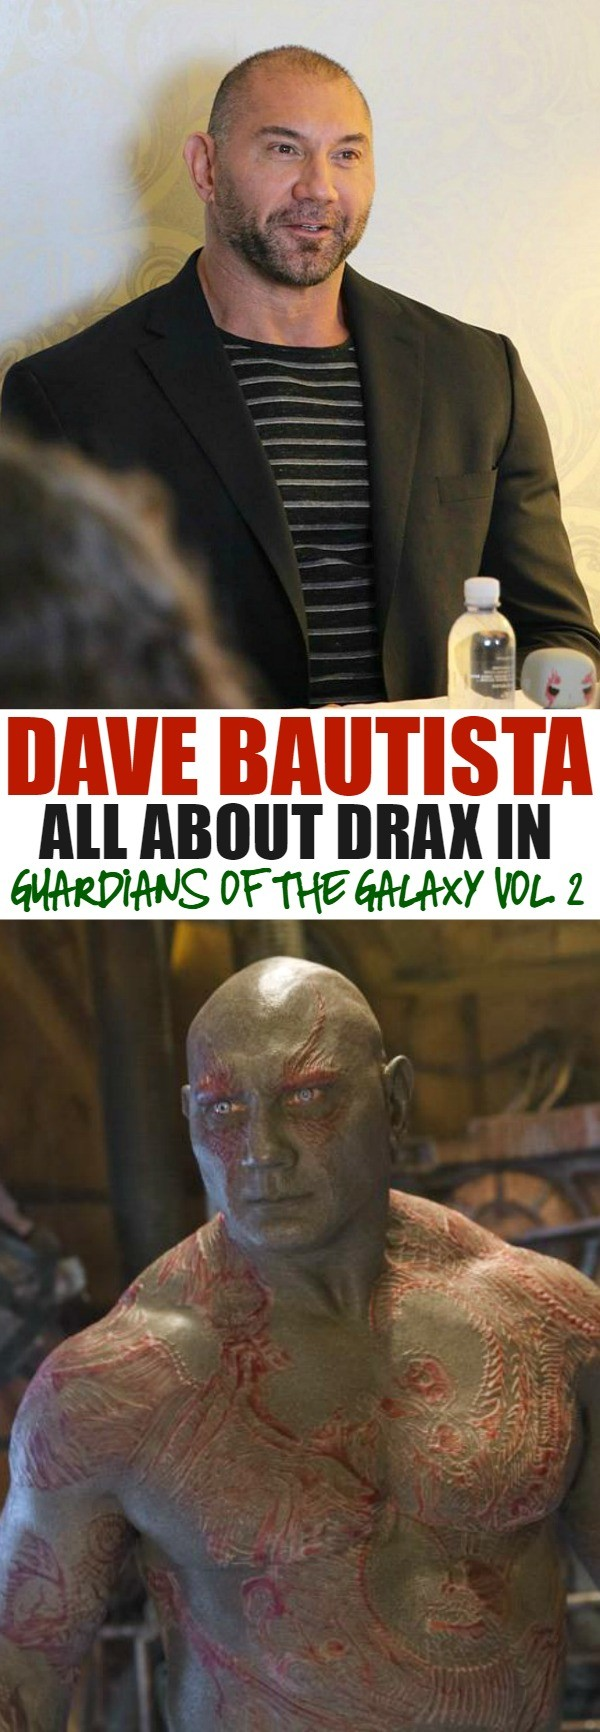 Dave Bautista Interview - Tells How He Feels About Drax In Guardians of the Galaxy Vol. 2